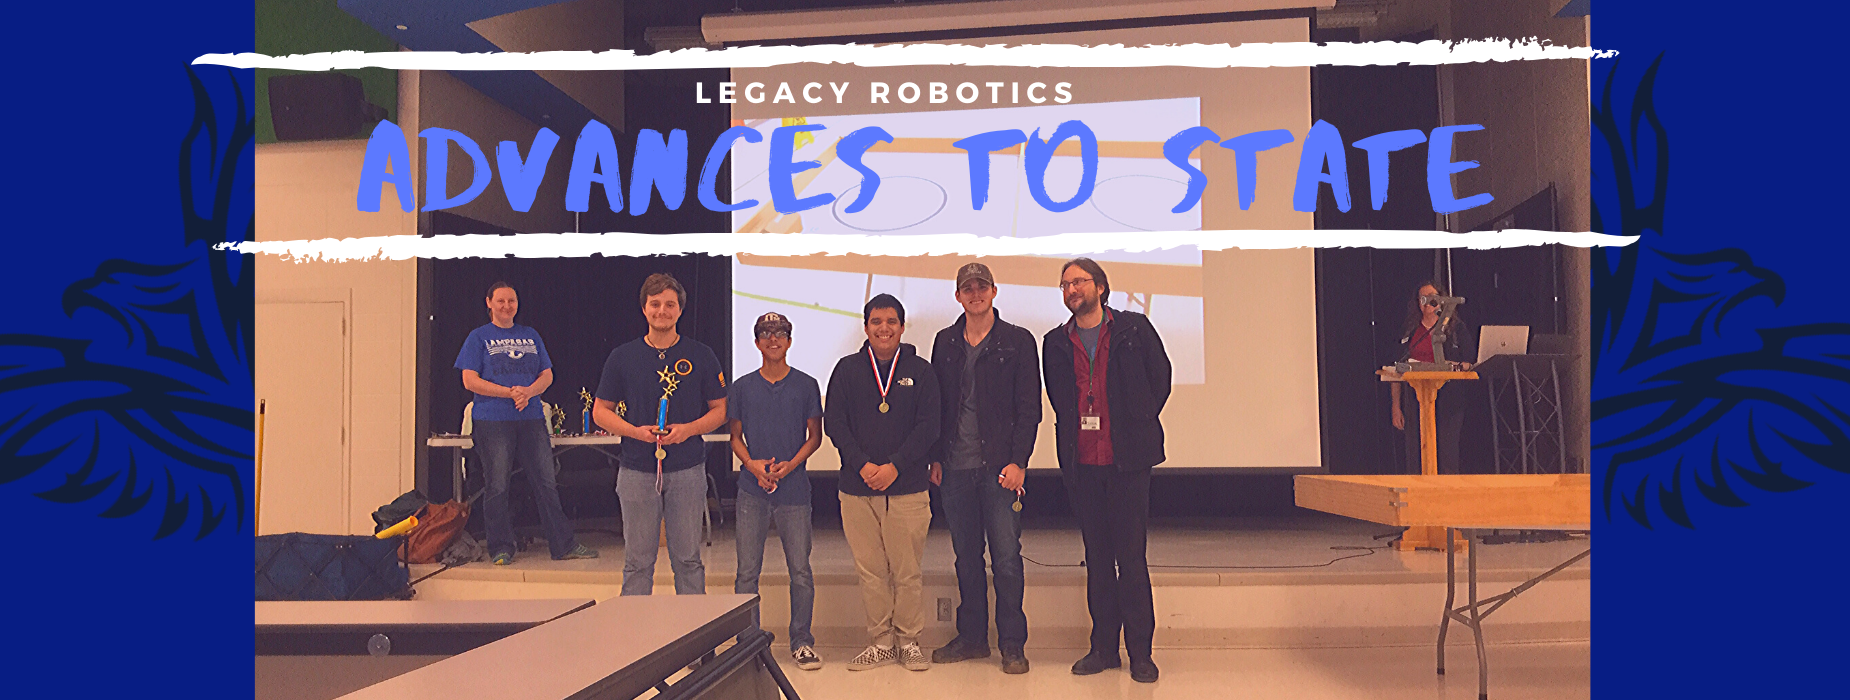 Robotics Team Advances to State competition